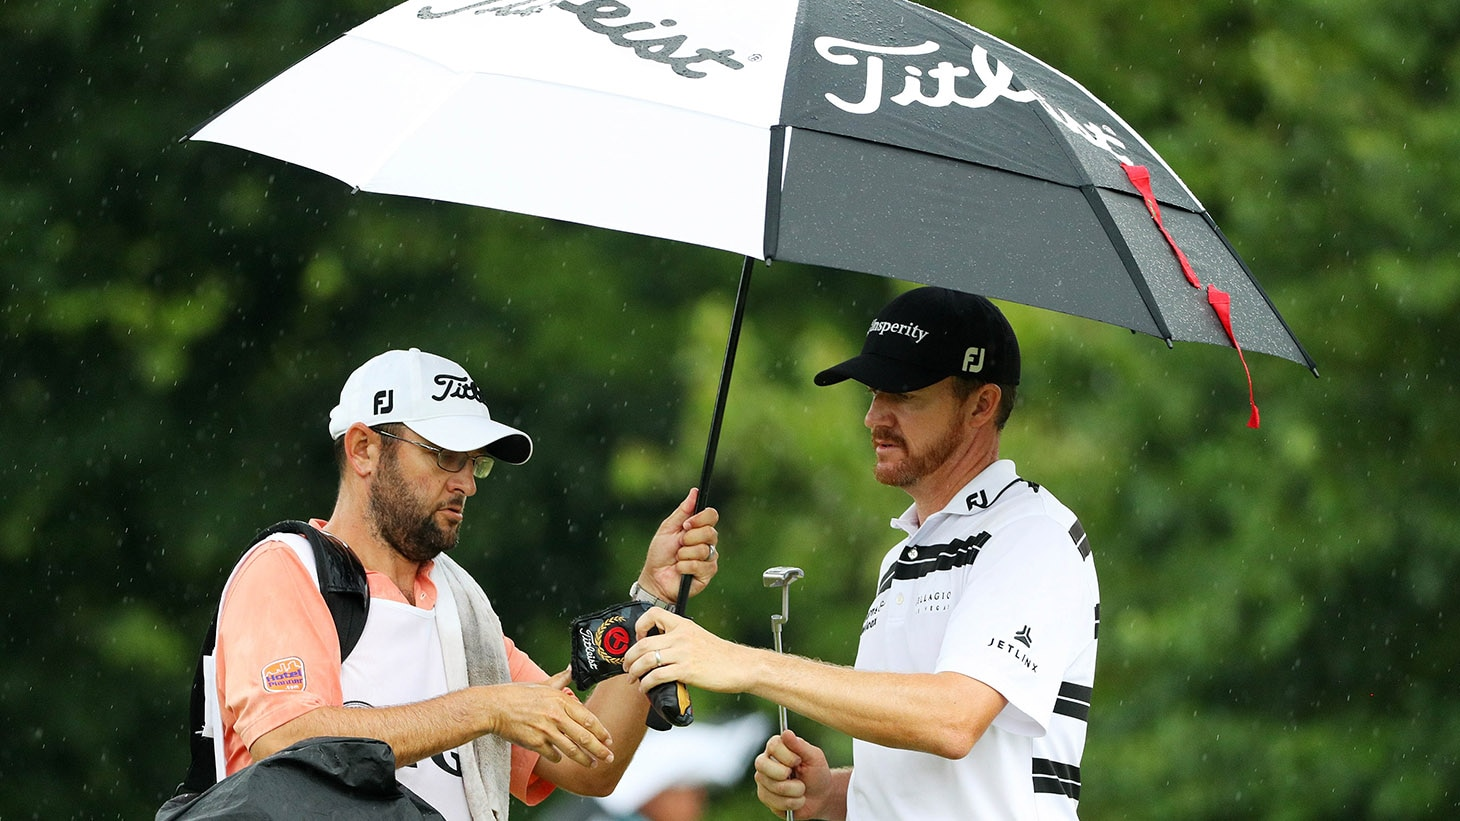 e67952699717 Titleist Gear for the Rain - Golf Gear - Team Titleist